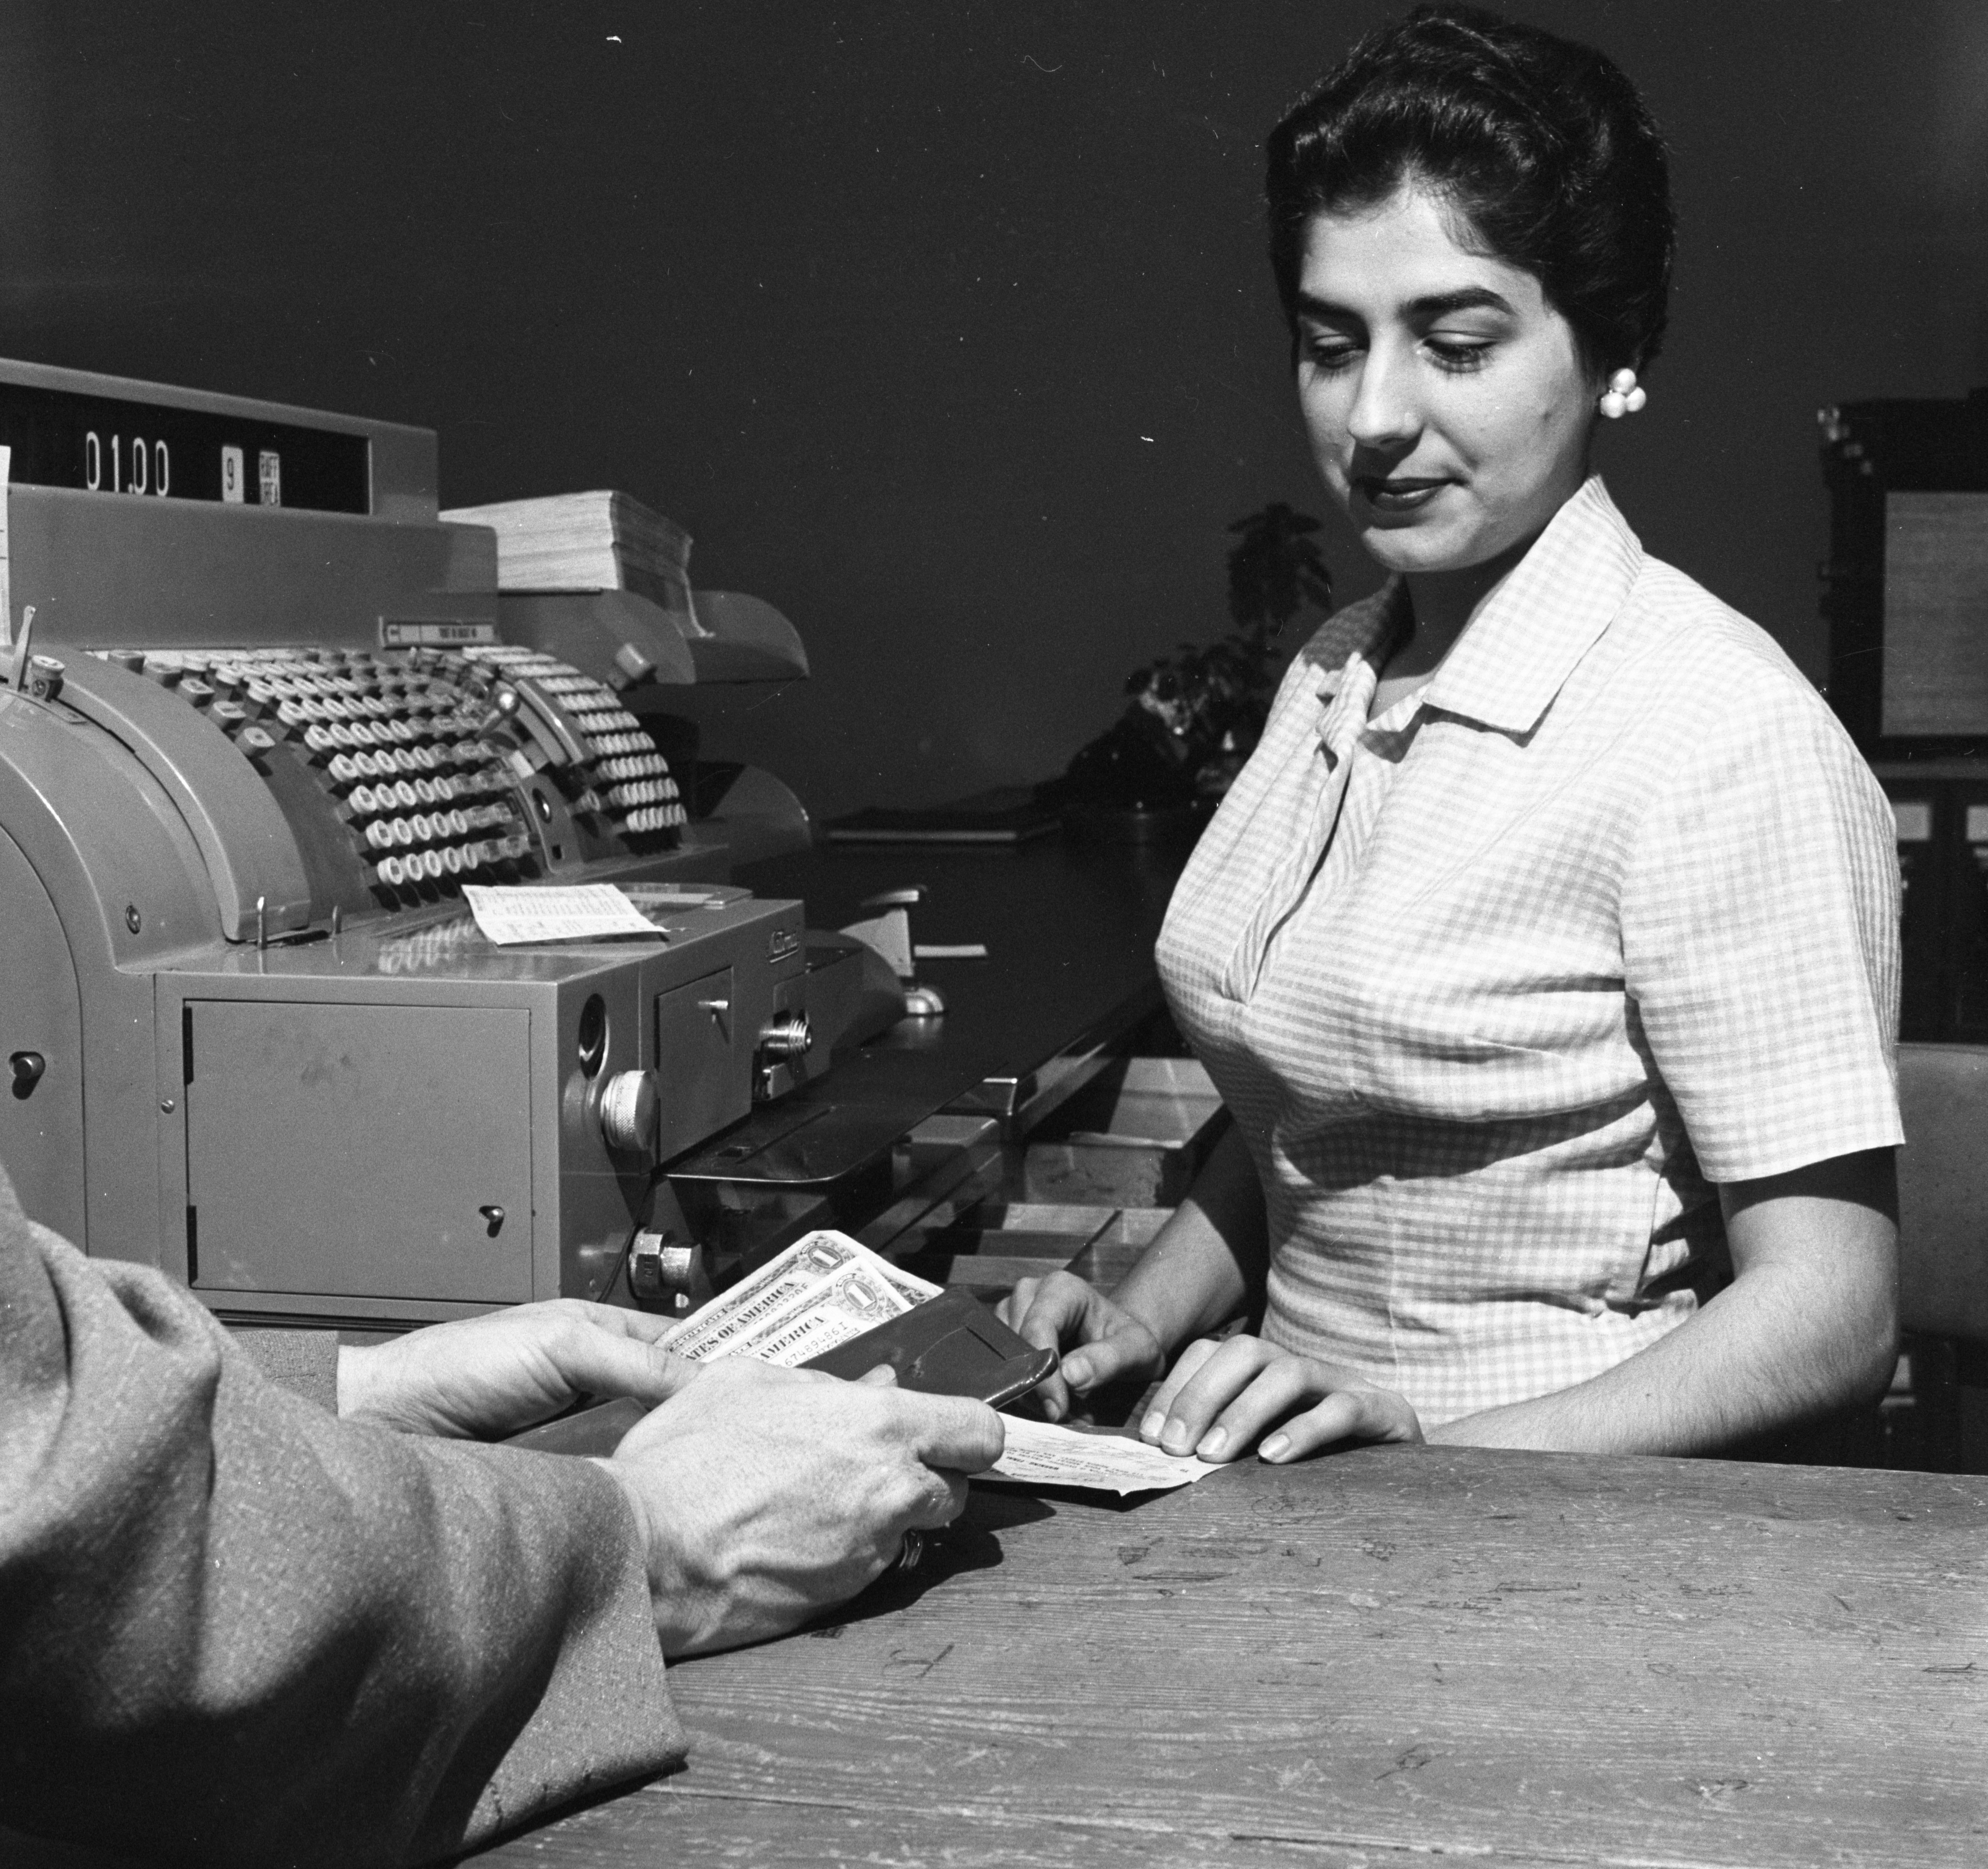 Sophie Carras, Municipal Court Office Cashier, Accepts Parking Violation Payment - May 1958 image